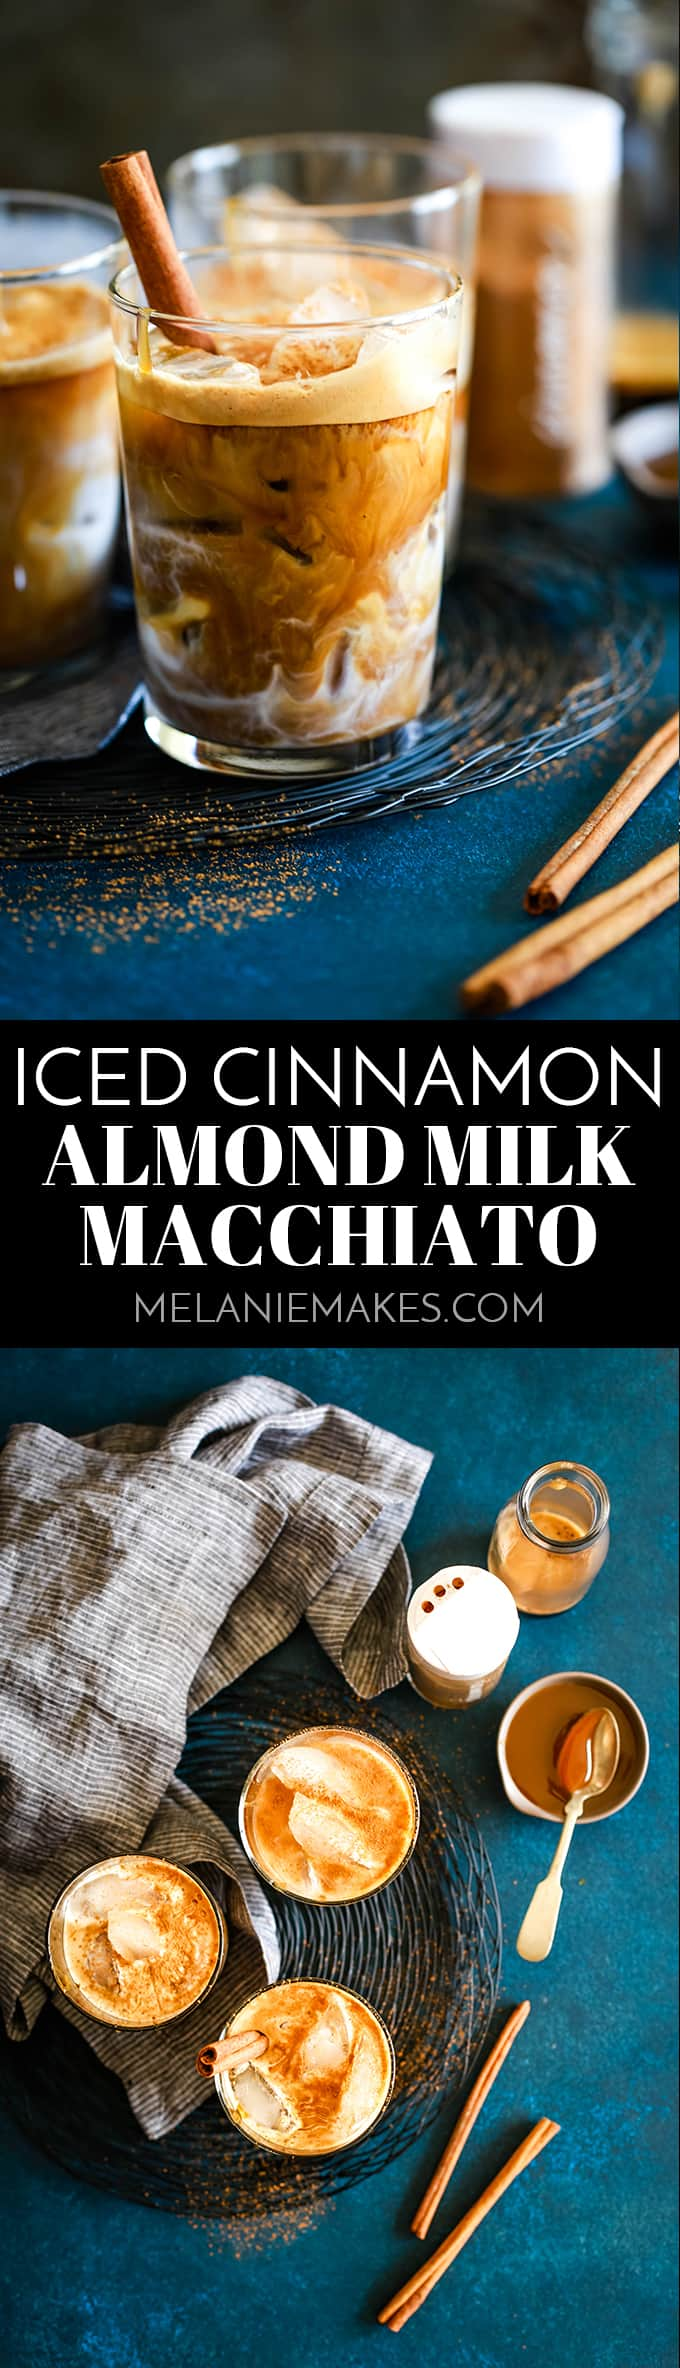 My four ingredient Iced Cinnamon Almond Milk Macchiato takes less than five minutes to create – so much faster than a trip to see your favorite barista! #starbucks #macchiato #coffee #espresso #icedcoffee #caramel #cinnamon